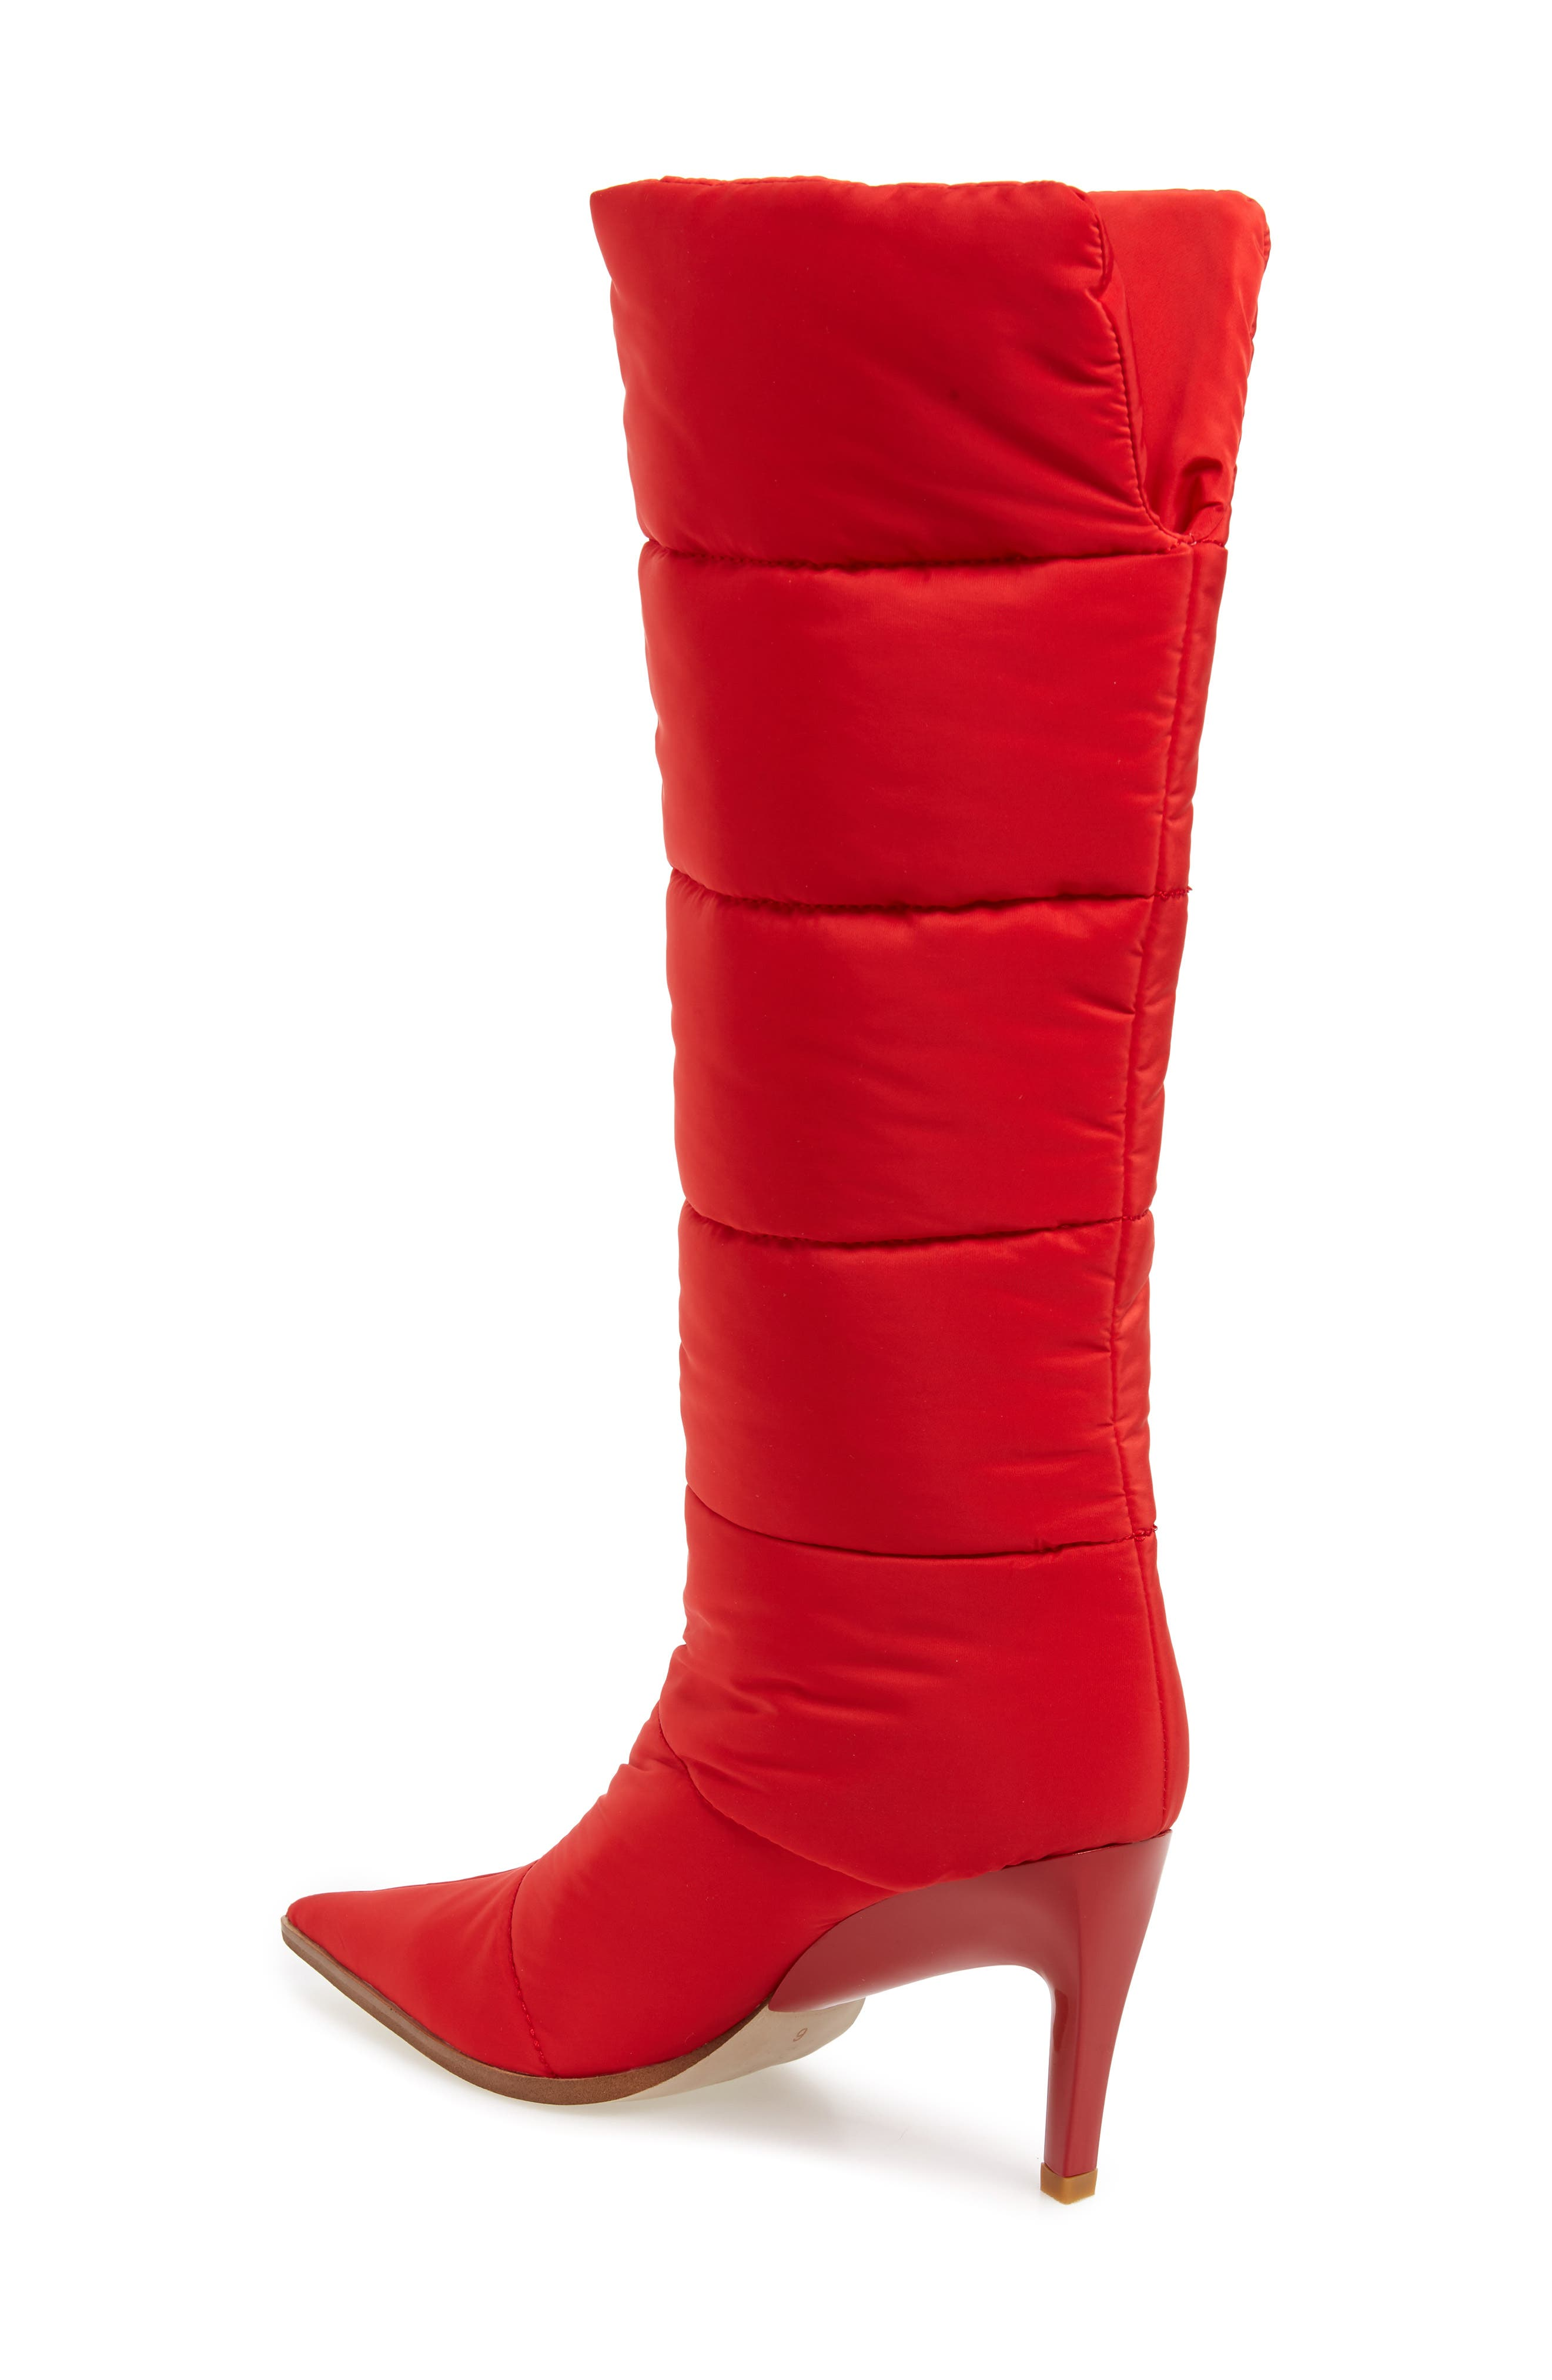 Apris Knee High Puffer Boot,                             Alternate thumbnail 2, color,                             RED FABRIC